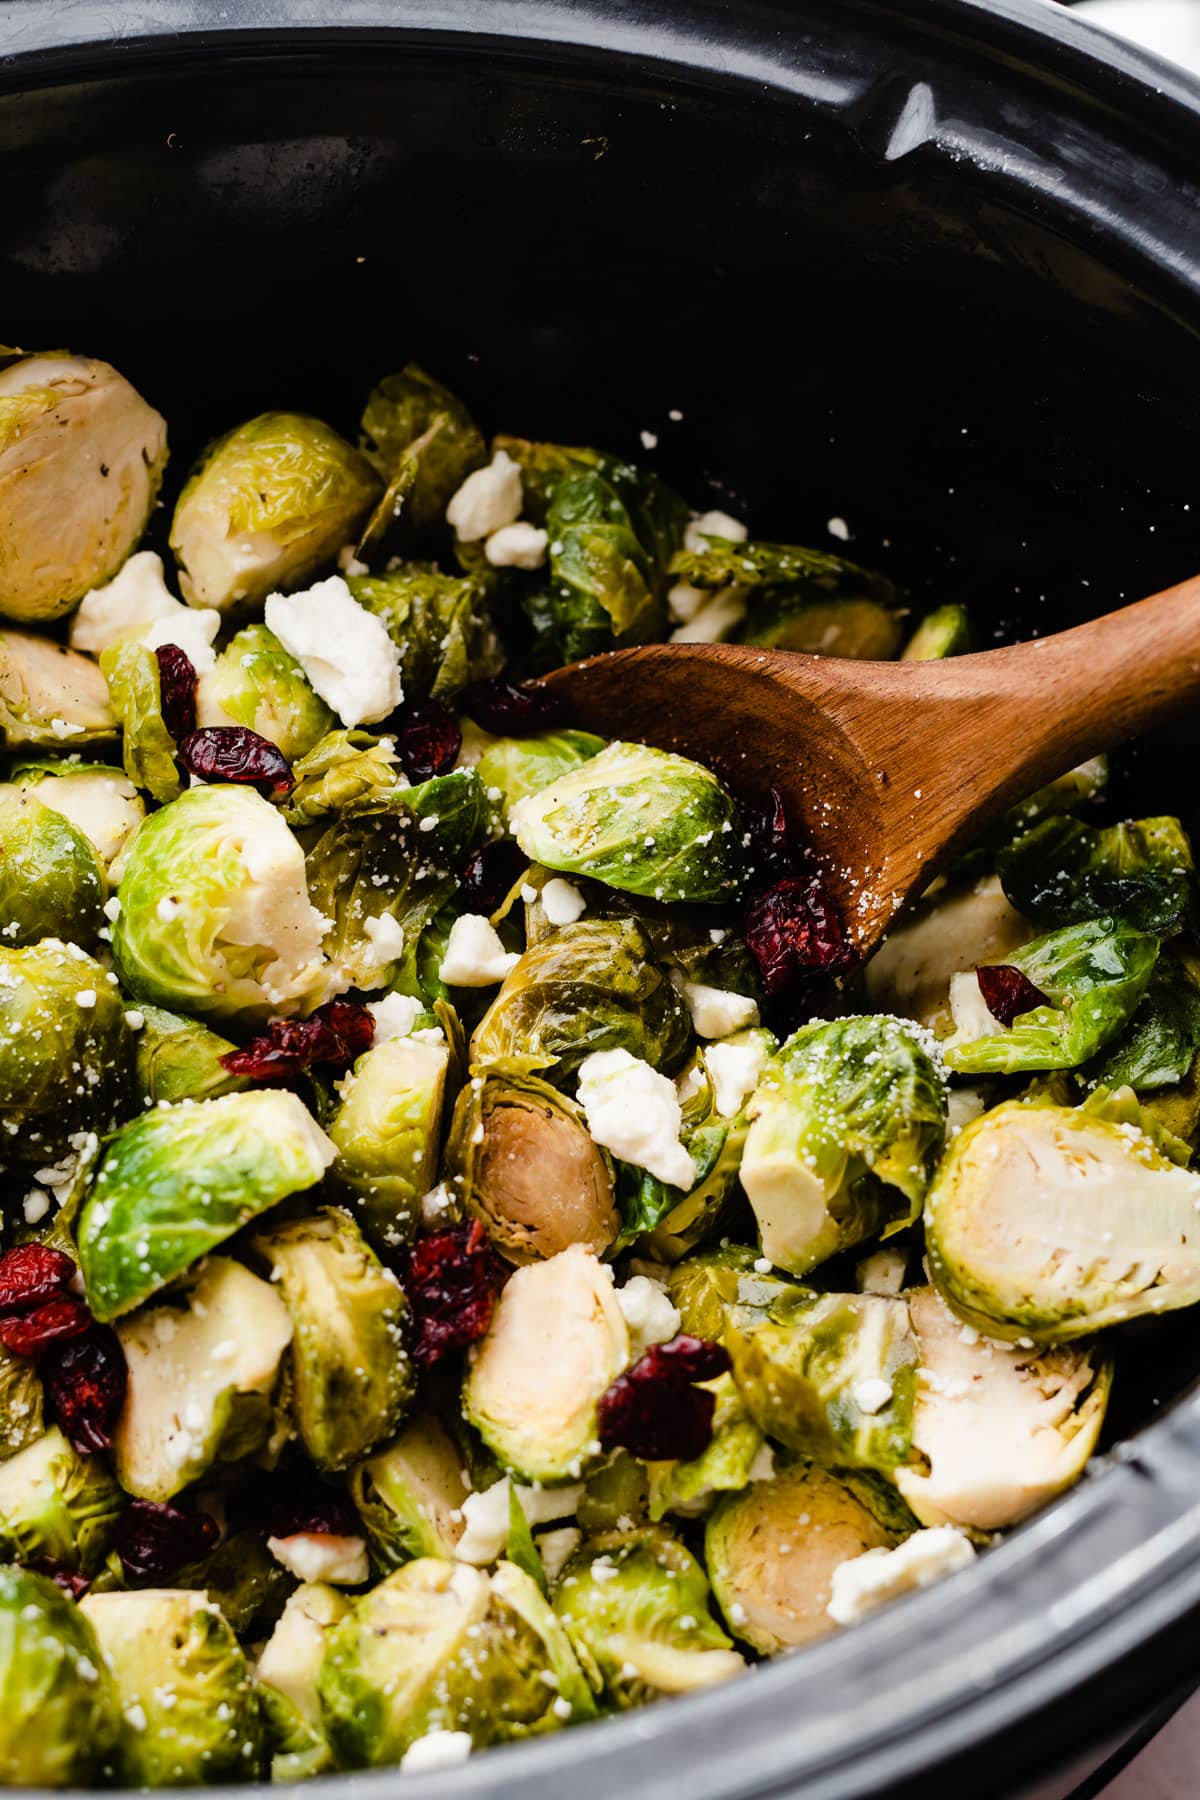 Slow Cooker Brussels Sprouts with Cranberries and Feta. Free up your oven! Easy crockpot recipe that's perfect for holiday parties, Thanksgiving, Christmas, or anytime you need an easy side. @wellplated